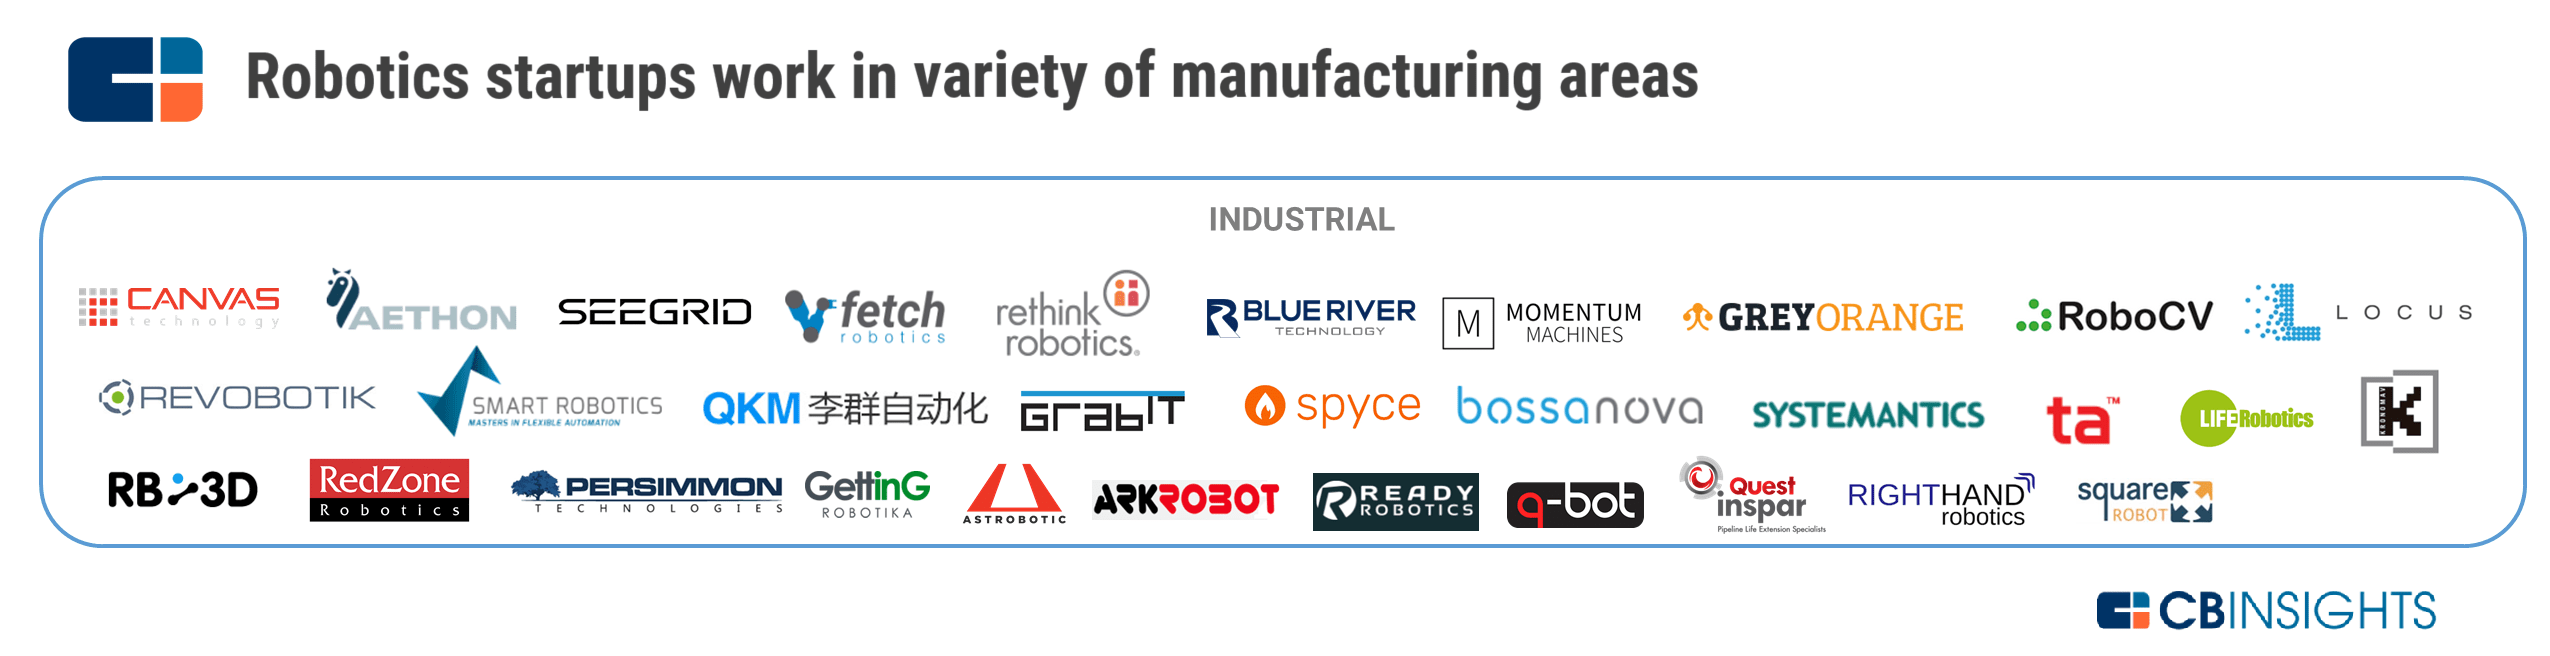 Future Factory How Technology Is Transforming Manufacturing Led Circuit Design Custom Electronic In The Near Term Reprogrammable Nature Of Cobots Will Allow Firms To Become More Customized And Work Parallel With Existing Equipment